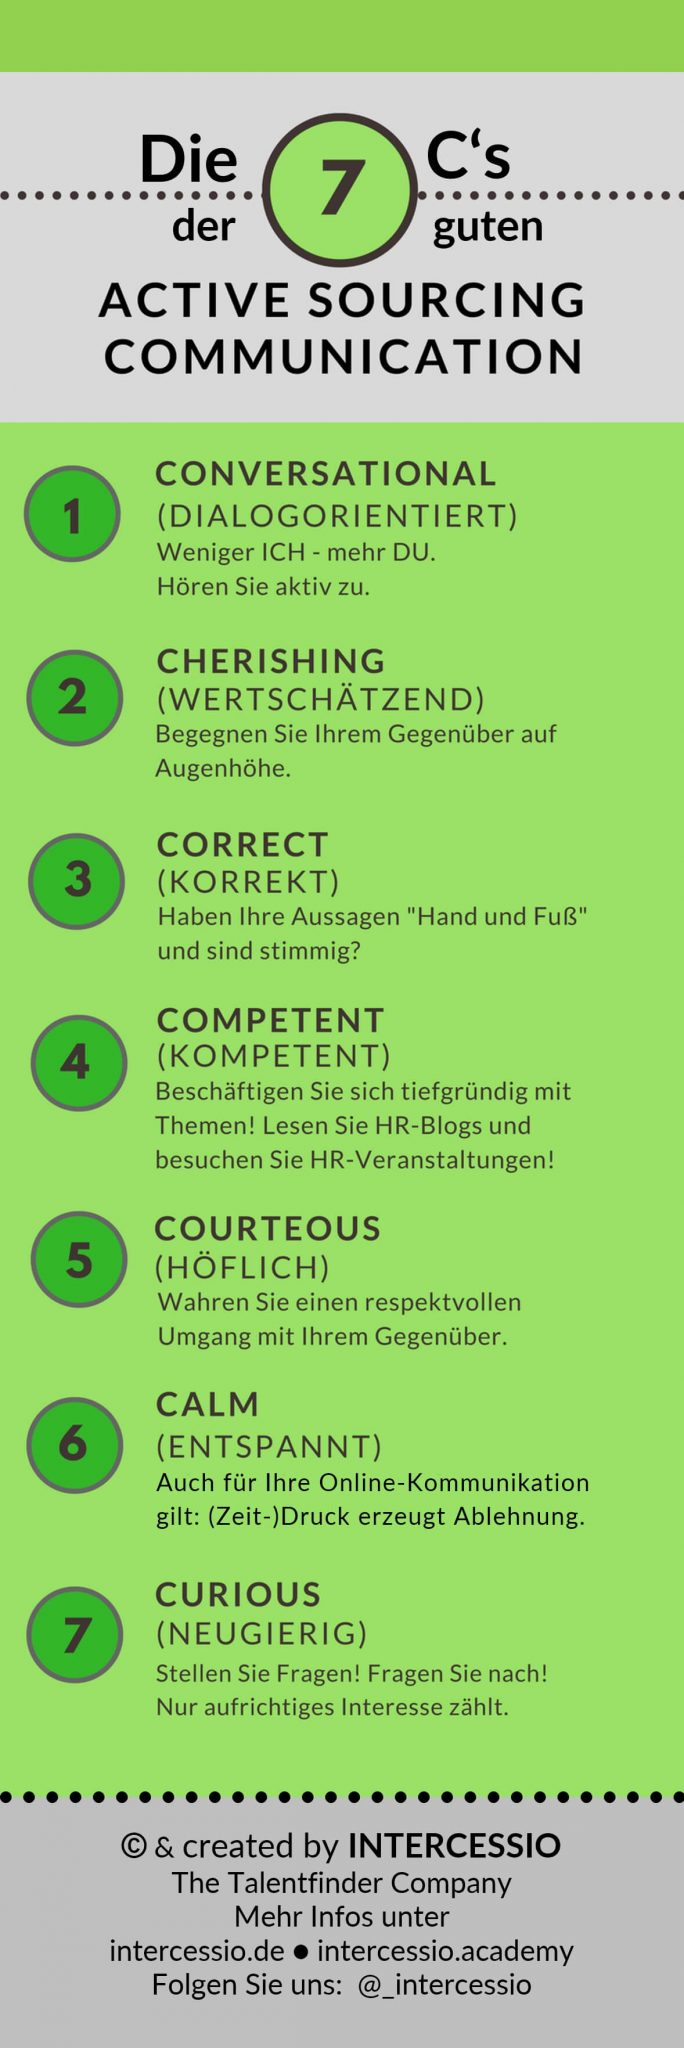 7 C's für effektive Active Sourcing Kommunikation - Infographic by Intercessio